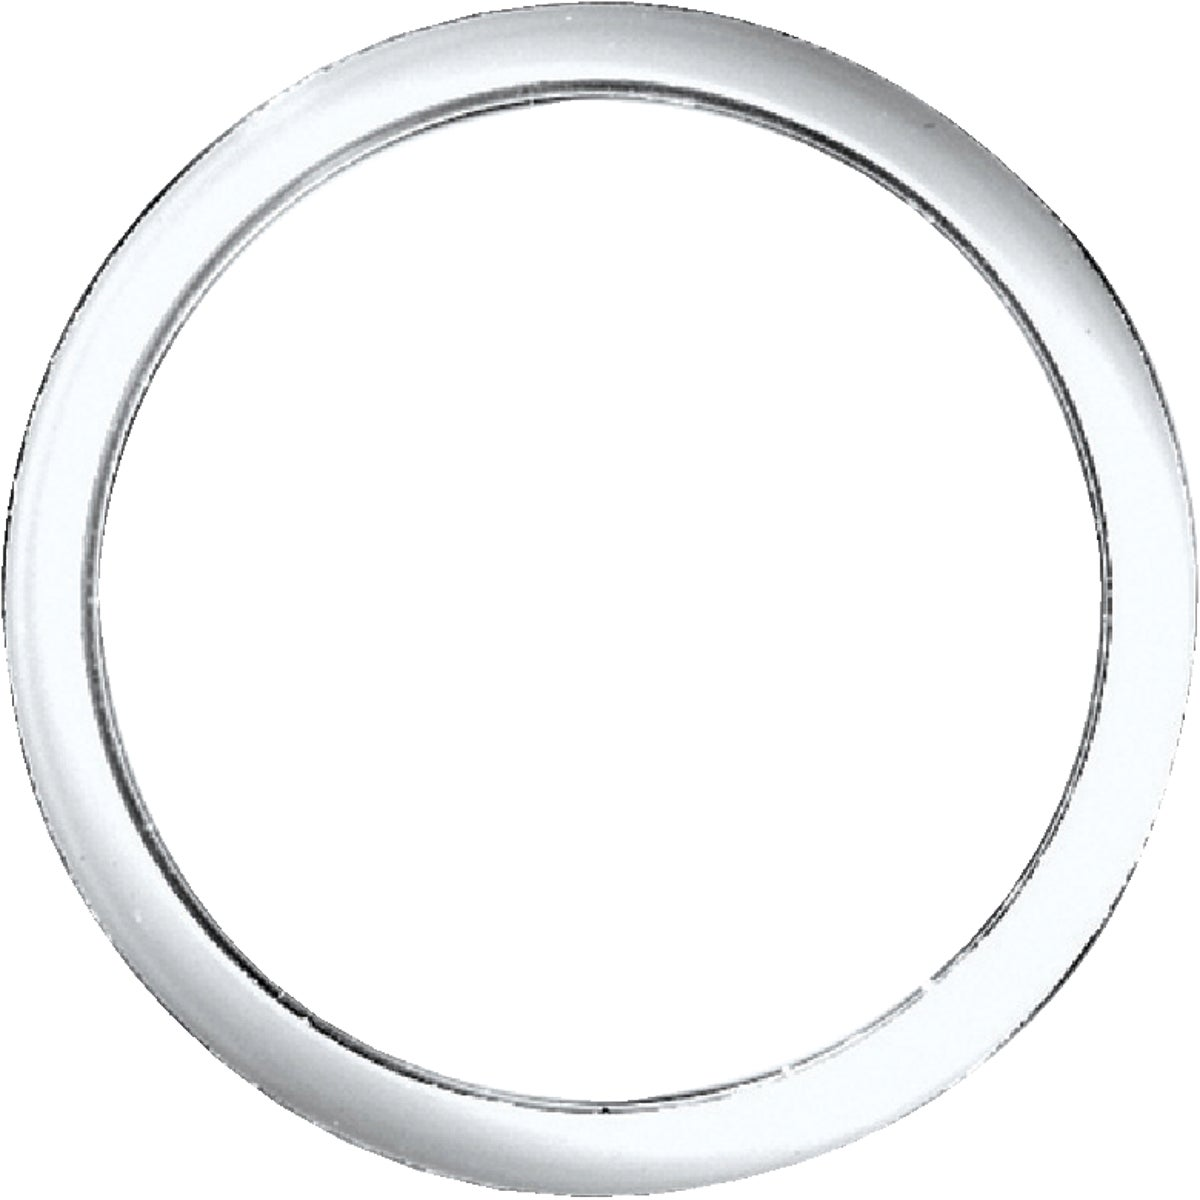 1-1/4X1-1/4 S/JNT WASHER - 36660B by Danco Perfect Match